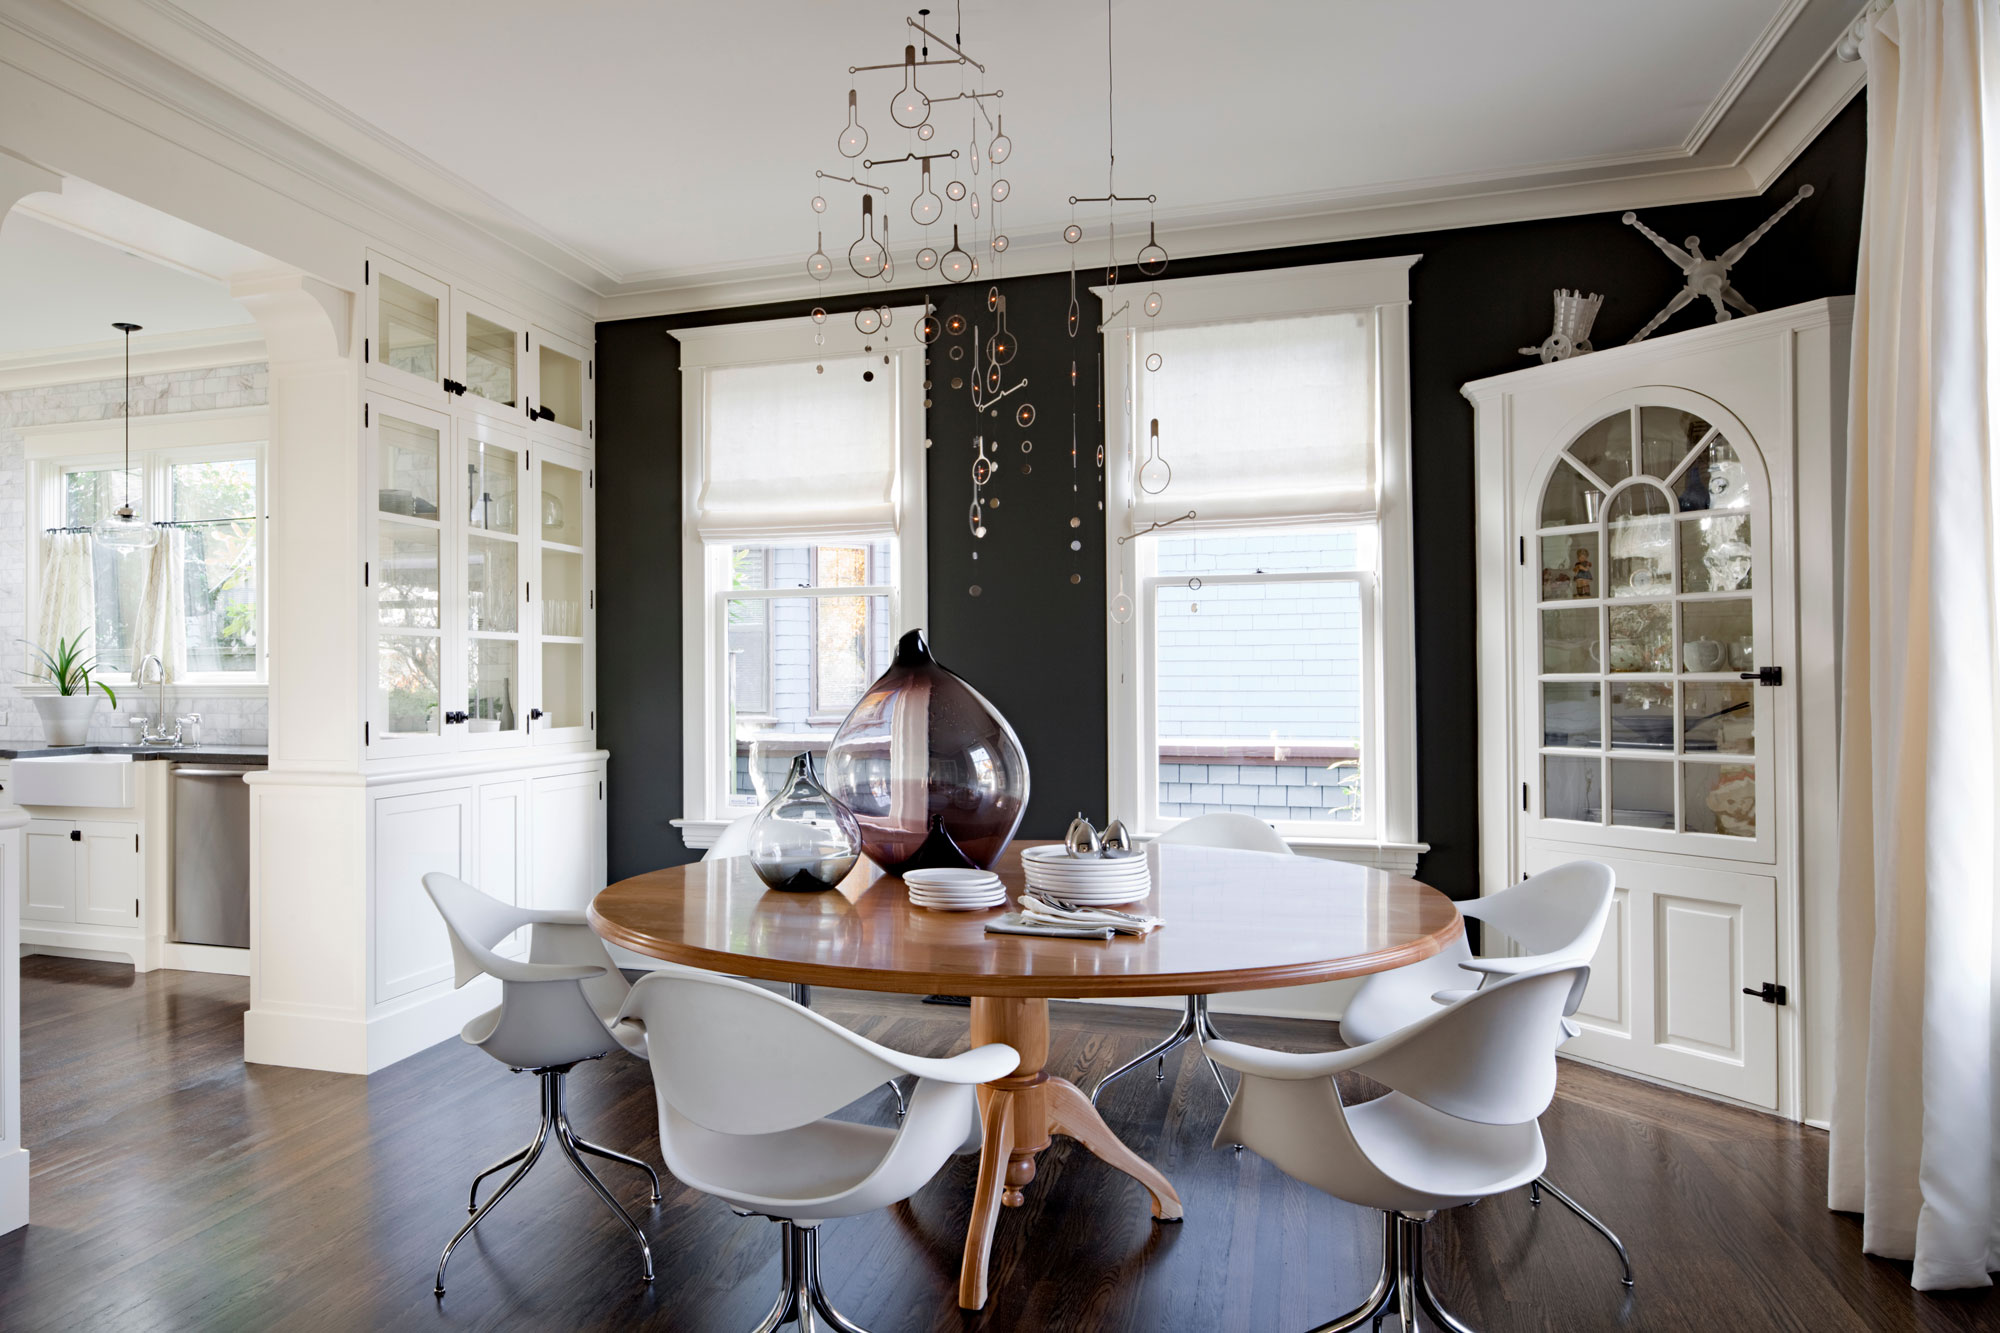 Turn Of The Century Modern Jessica Helgerson Interior Design